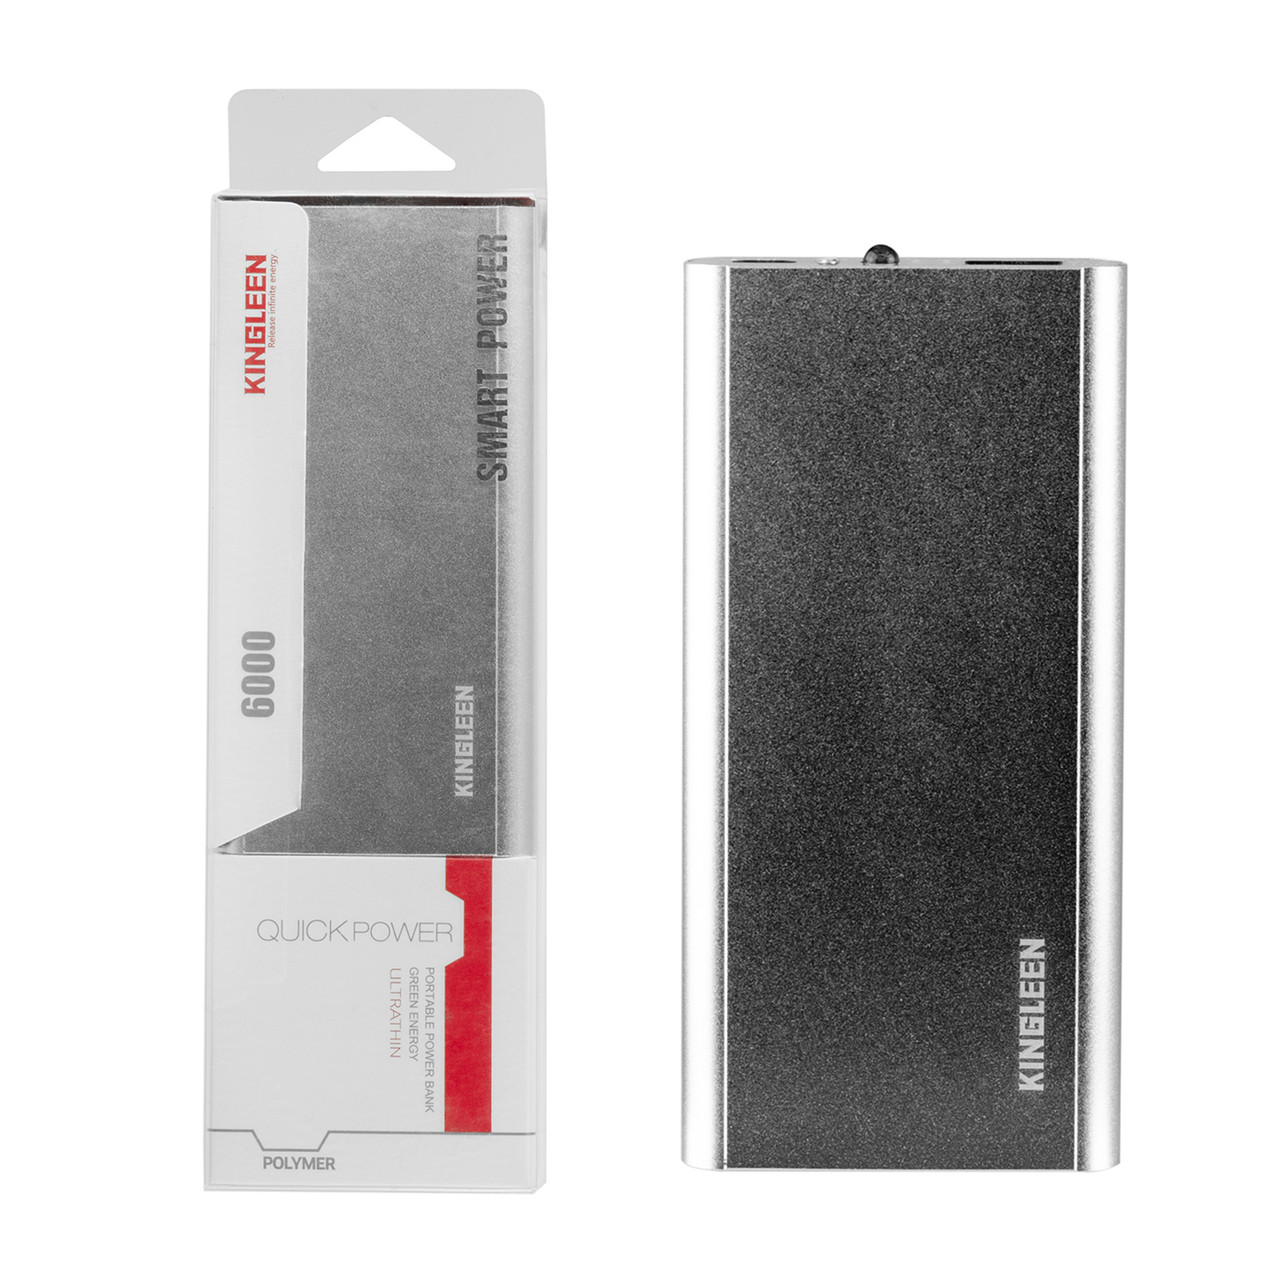 Power bank Kingleen 308S 6000 mAh 1XUSB Silver